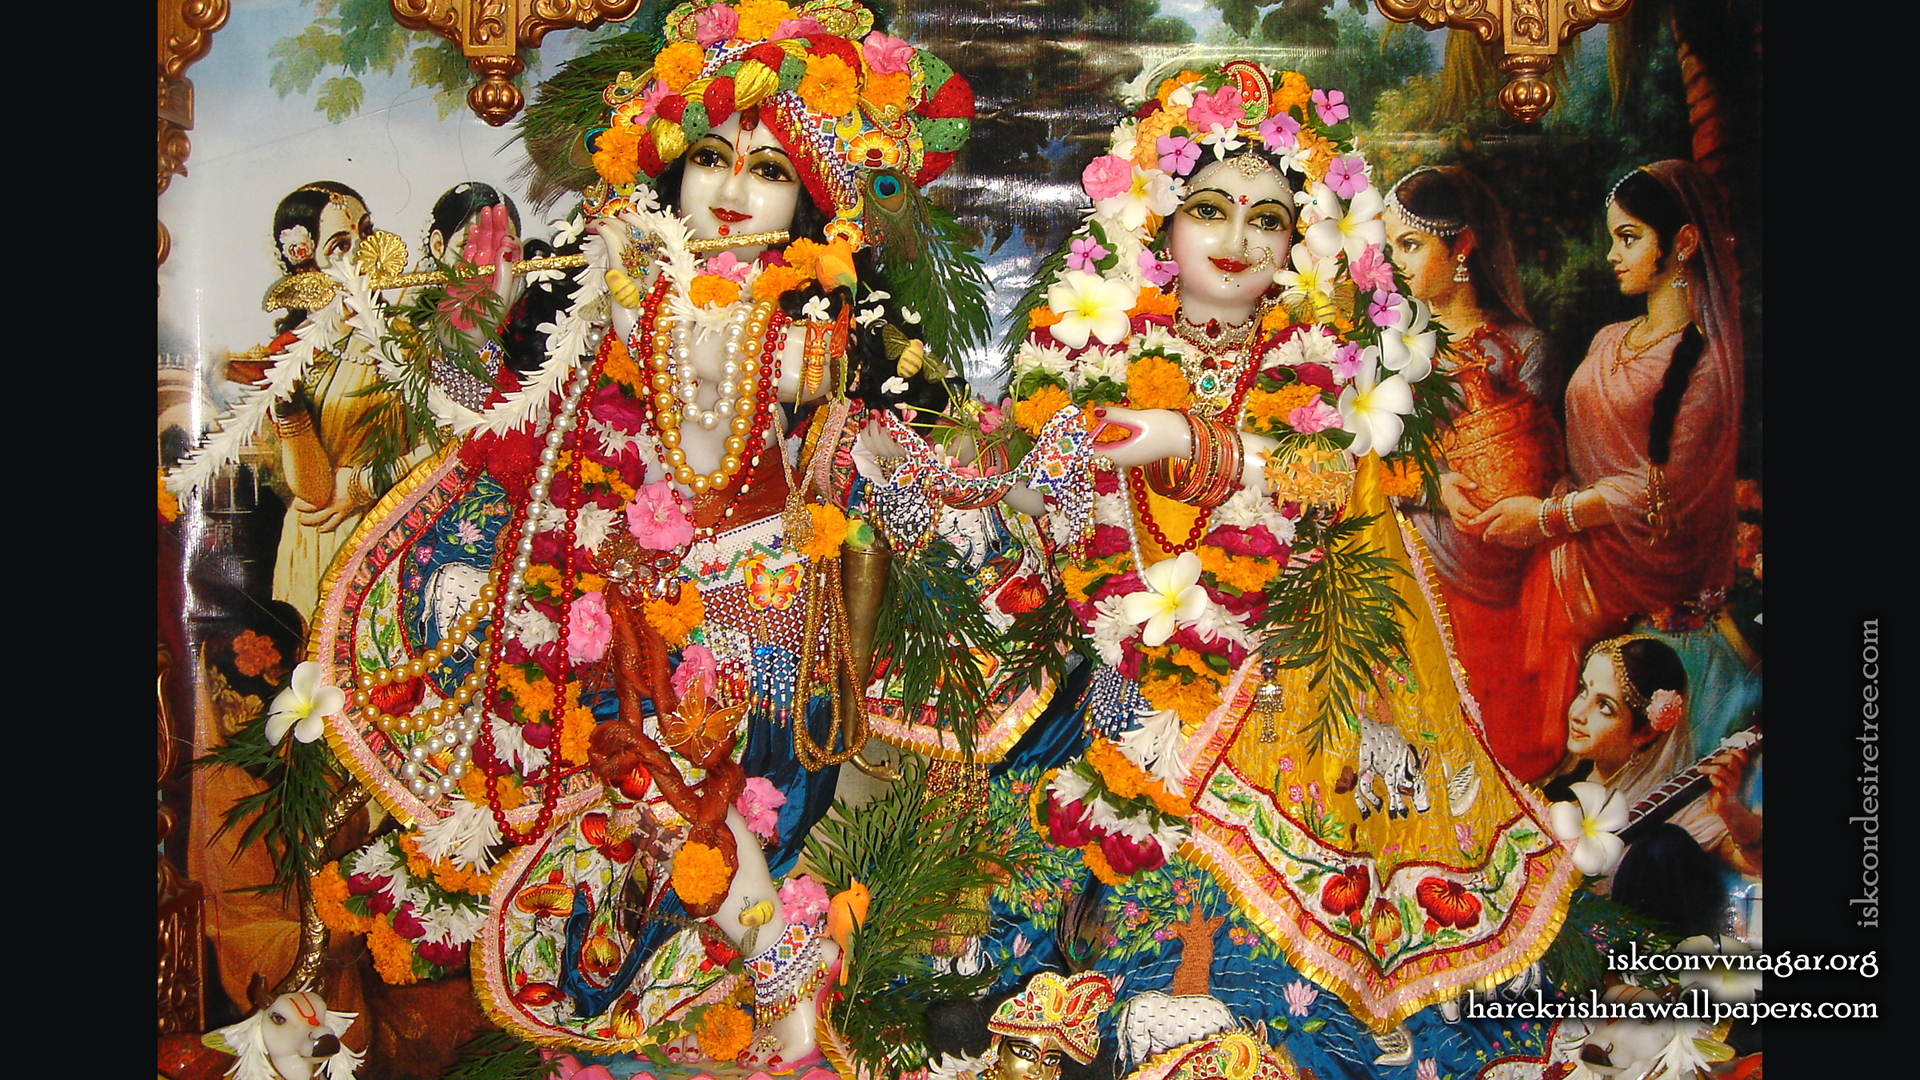 Sri Sri Radha Giridhari Wallpaper (017) Size 1920x1080 Download